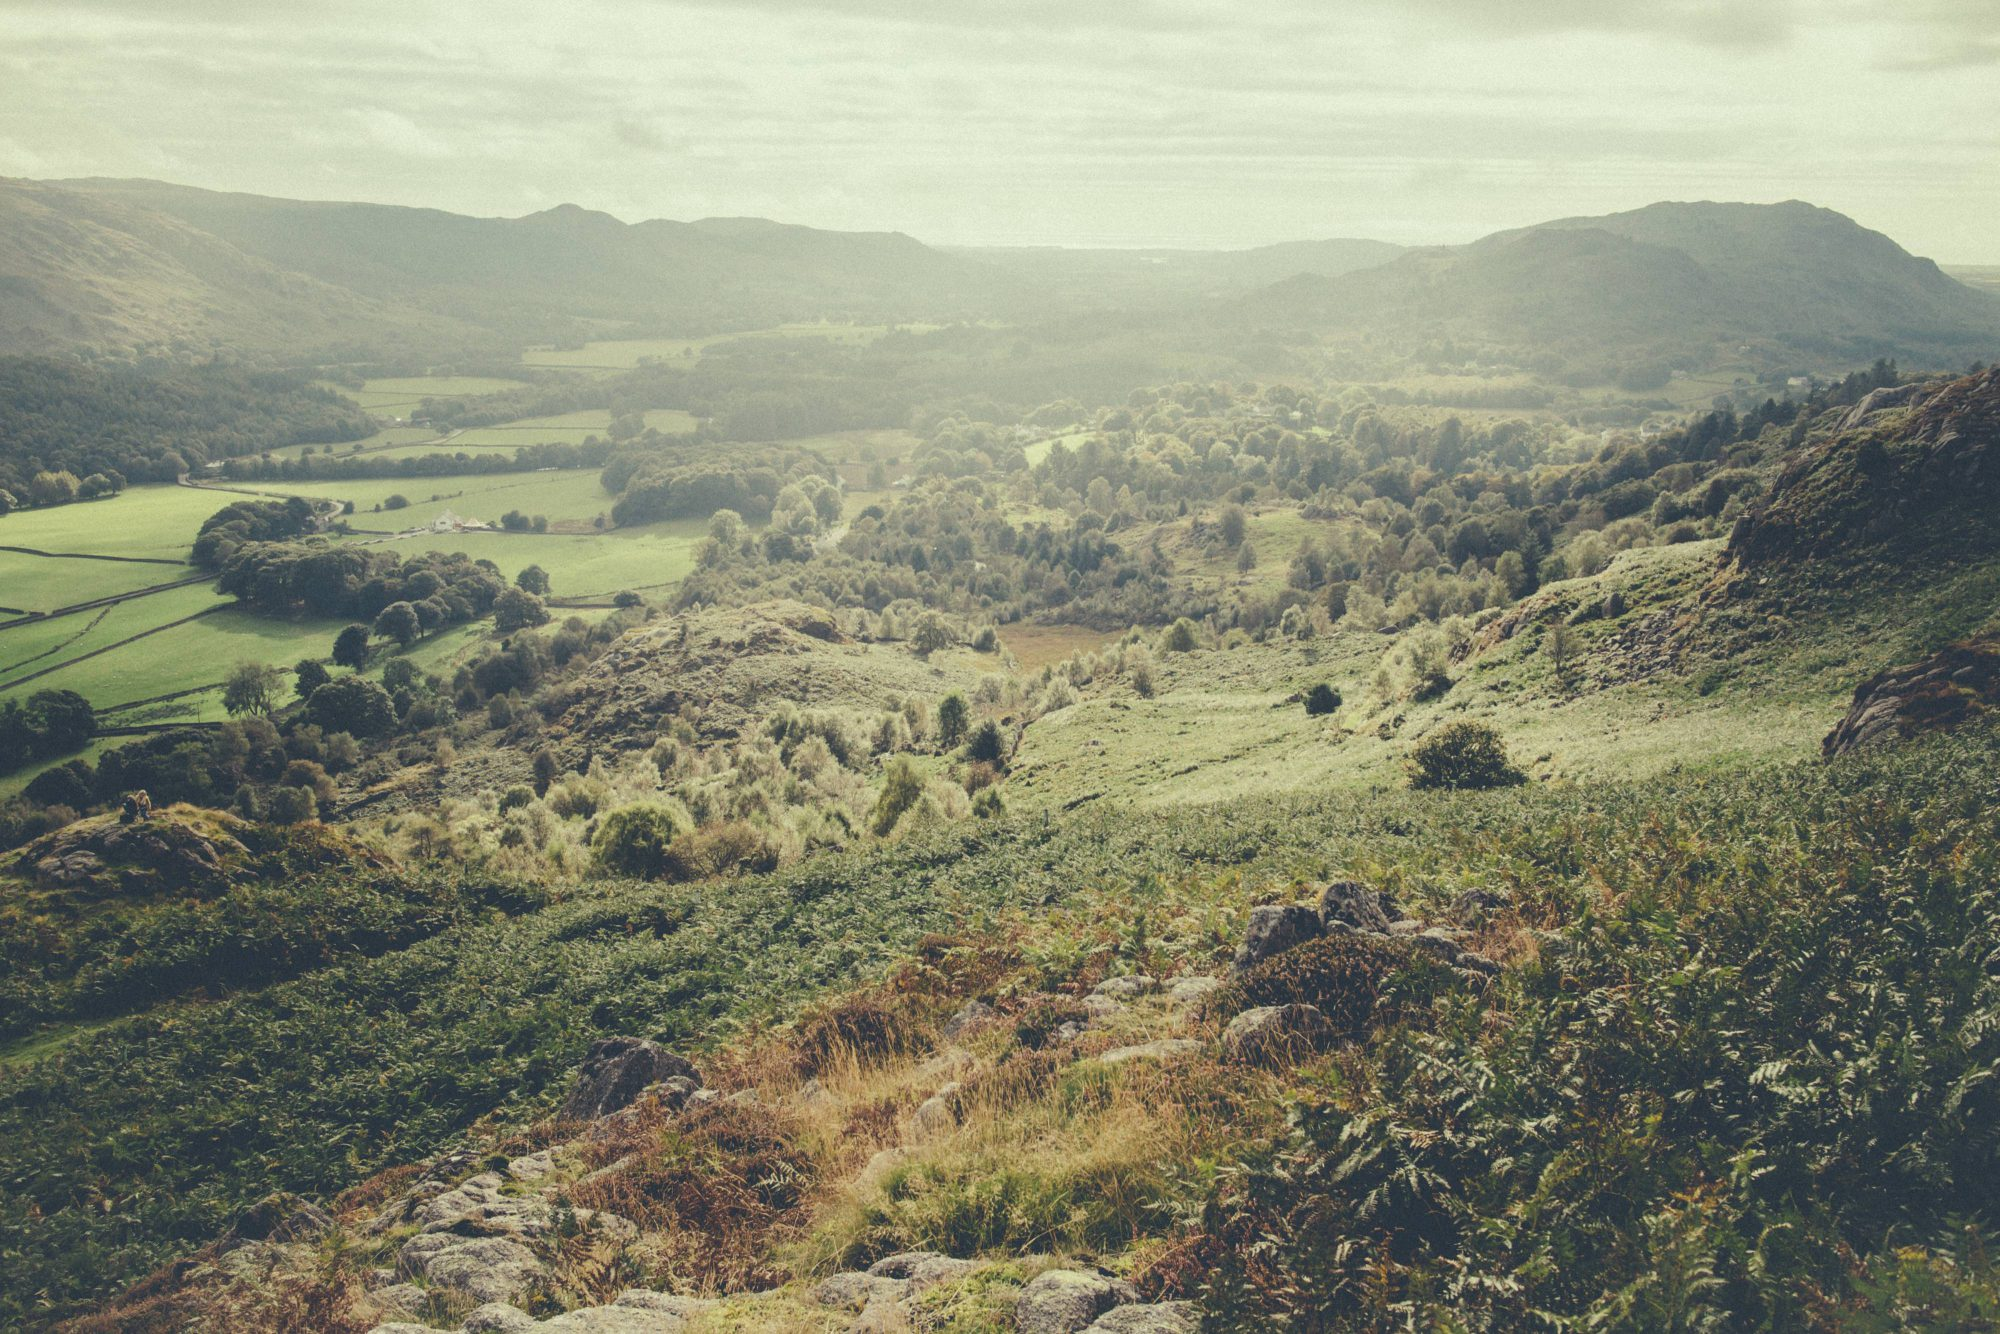 Eskdale, The Lake District - 09/13